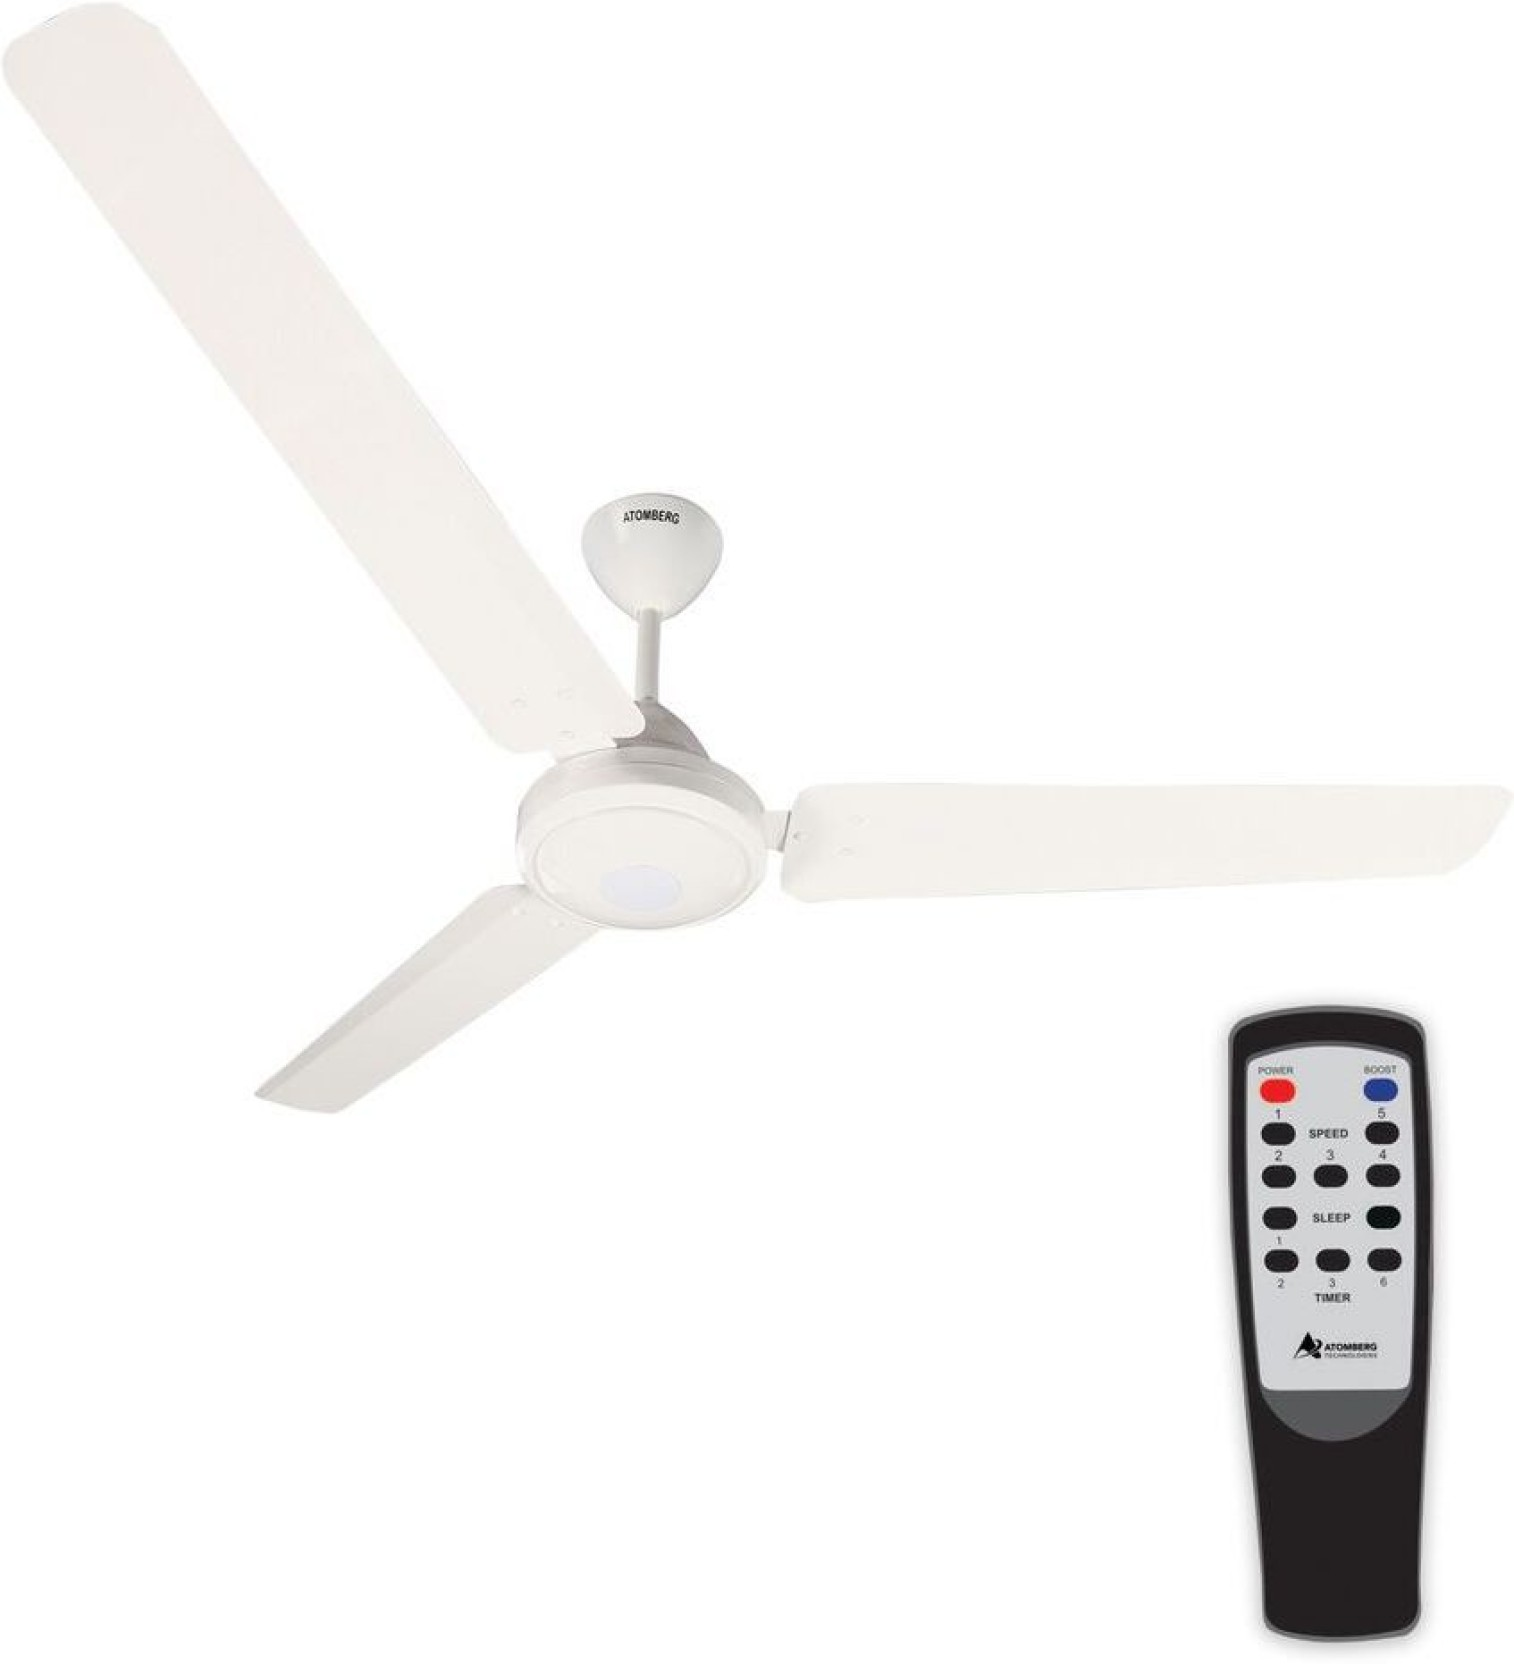 Gorilla E1 1200 Bldc Motor With Remote Control 3 Blade Ceiling Fan Google On Wires And Wiring A Without Light Offer